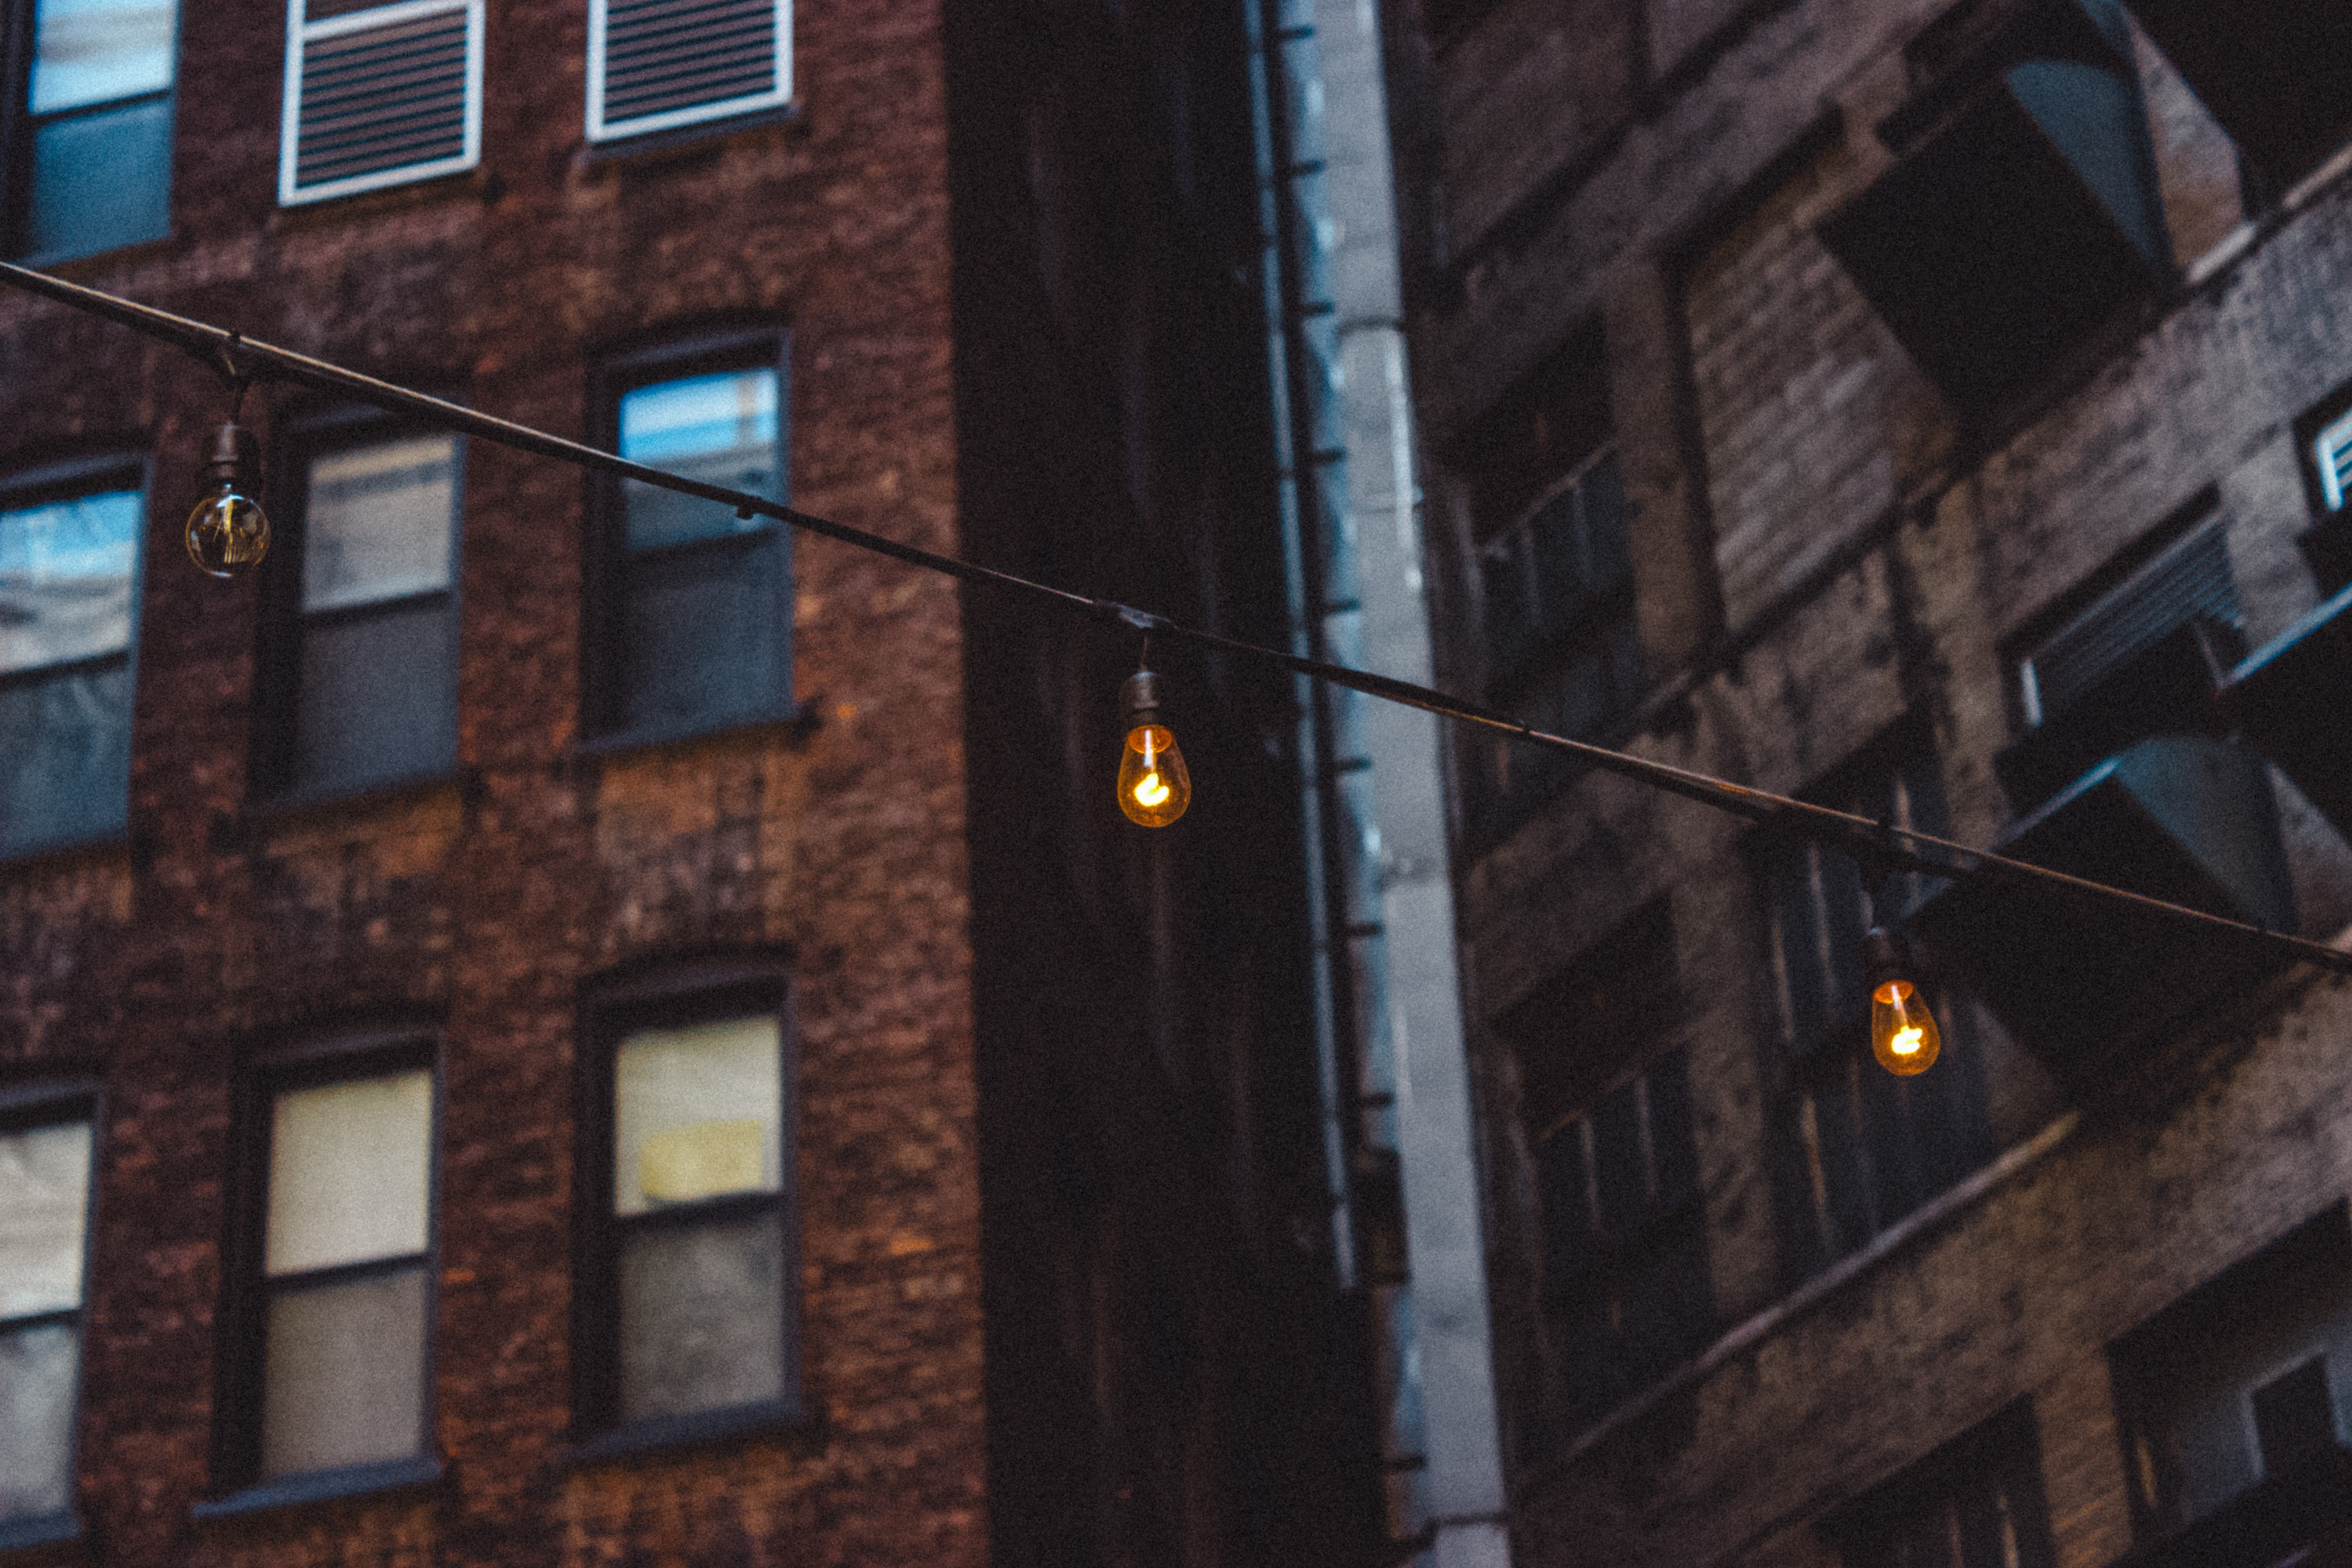 lighted string of light bulbs mounted on buildings outdoors